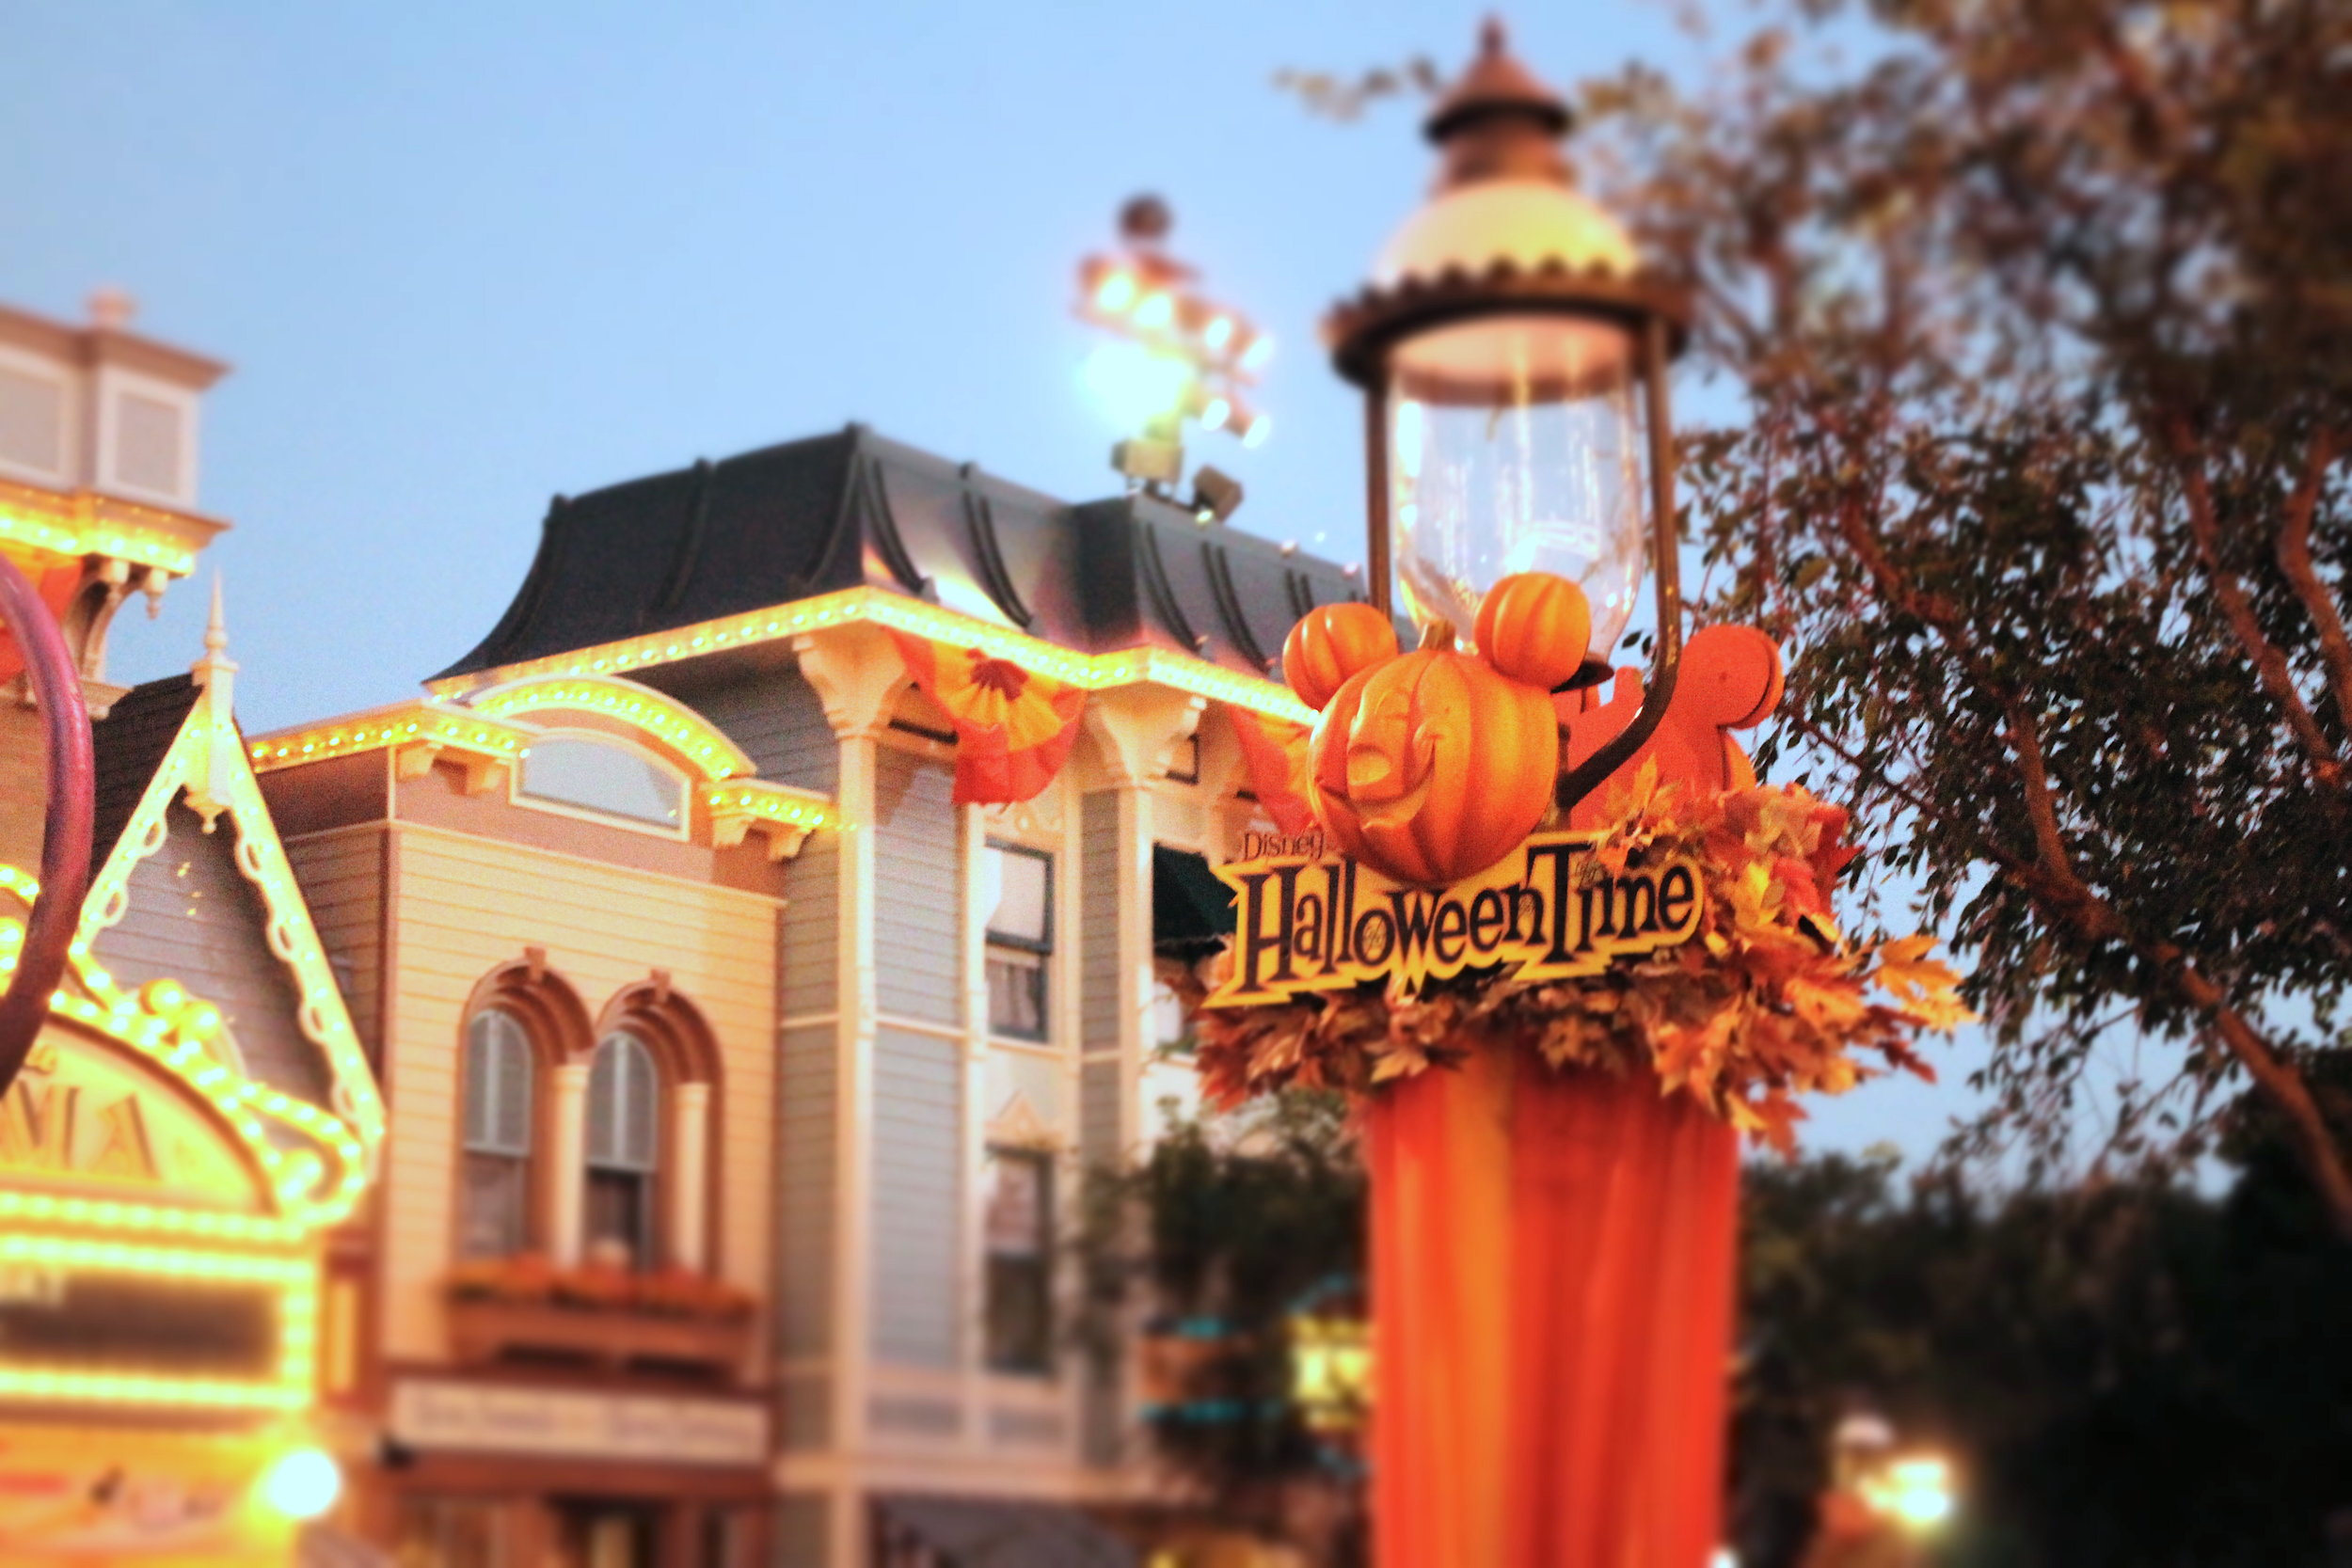 HaloweenTime on Main Street